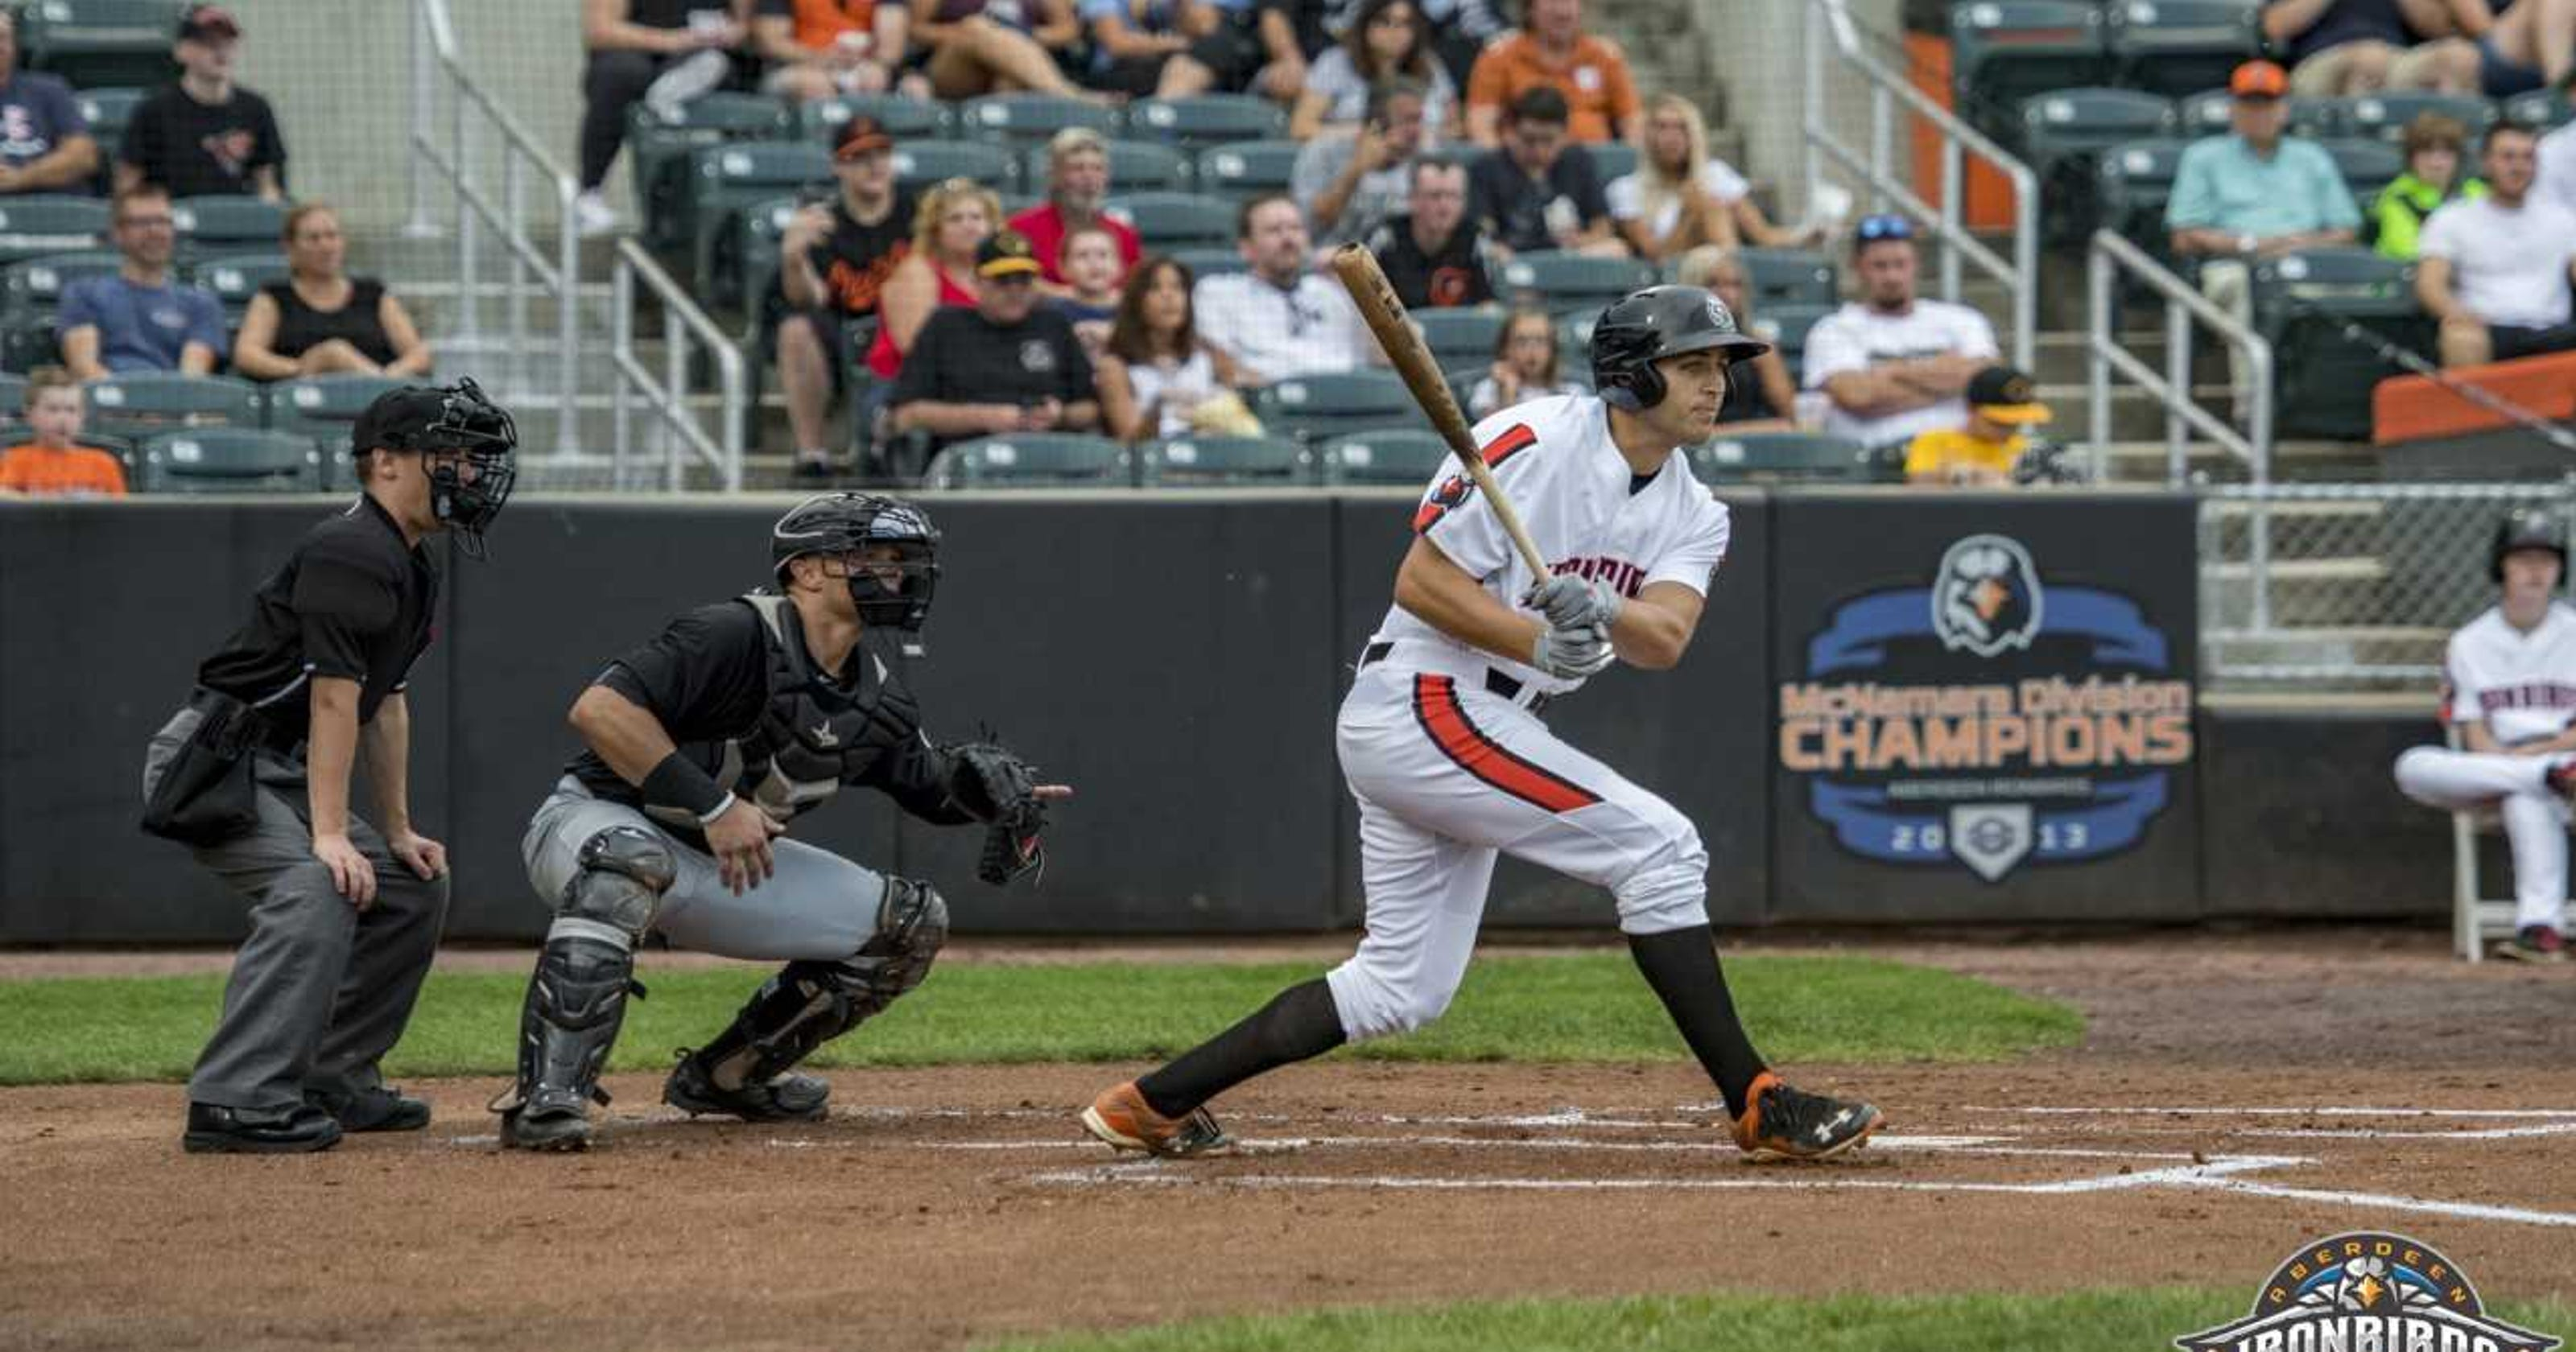 Ripken Hoping To Make His Own Mark With Shorebirds